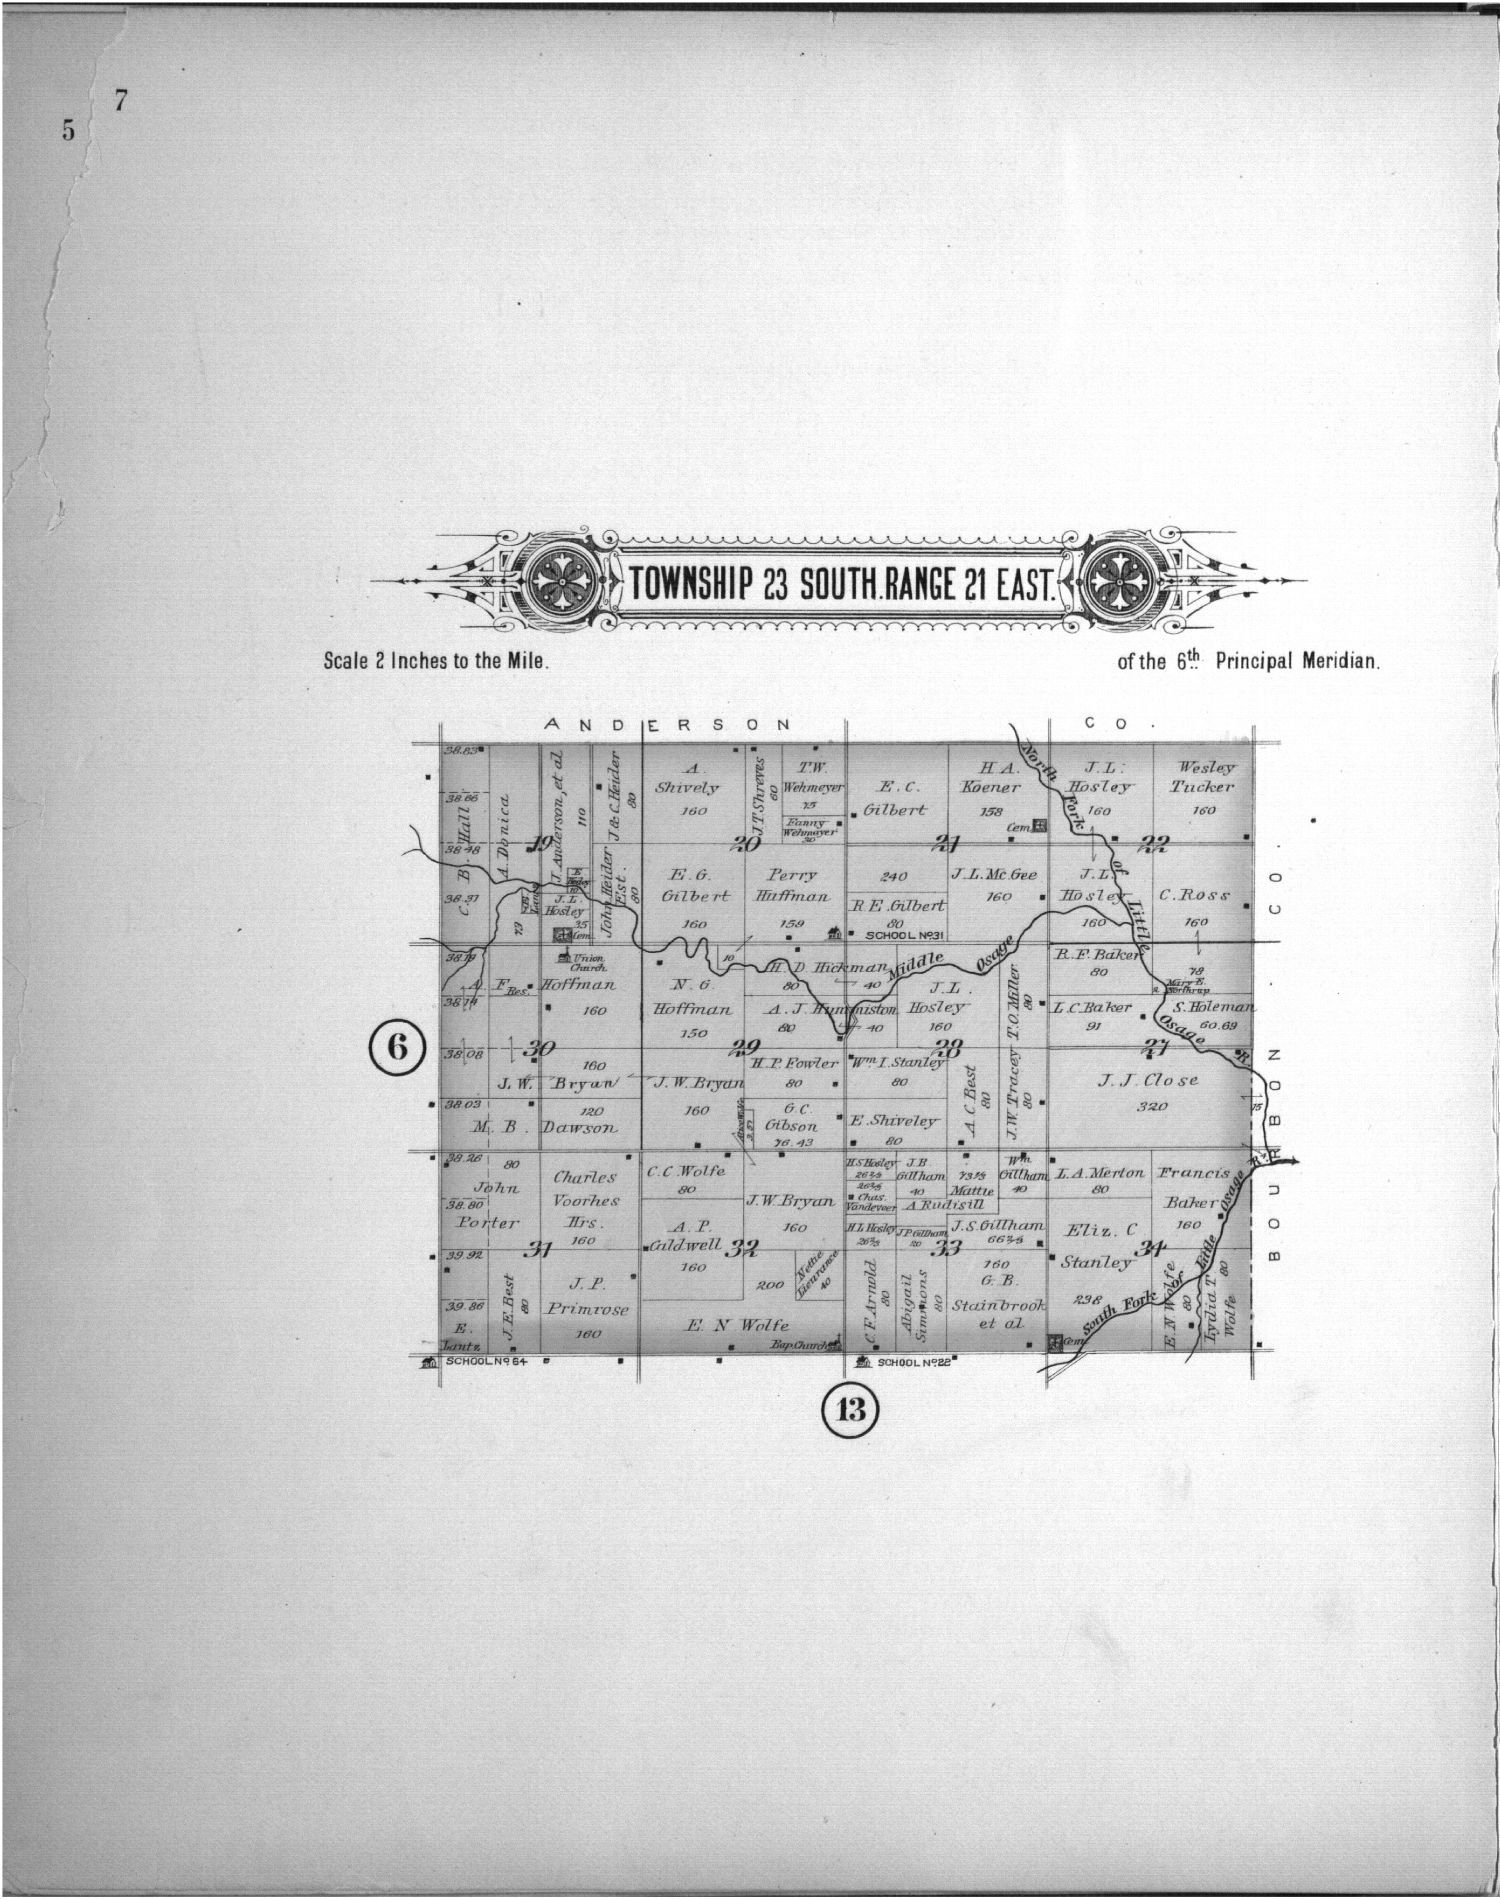 Plat book of Allen County, Kansas - 7